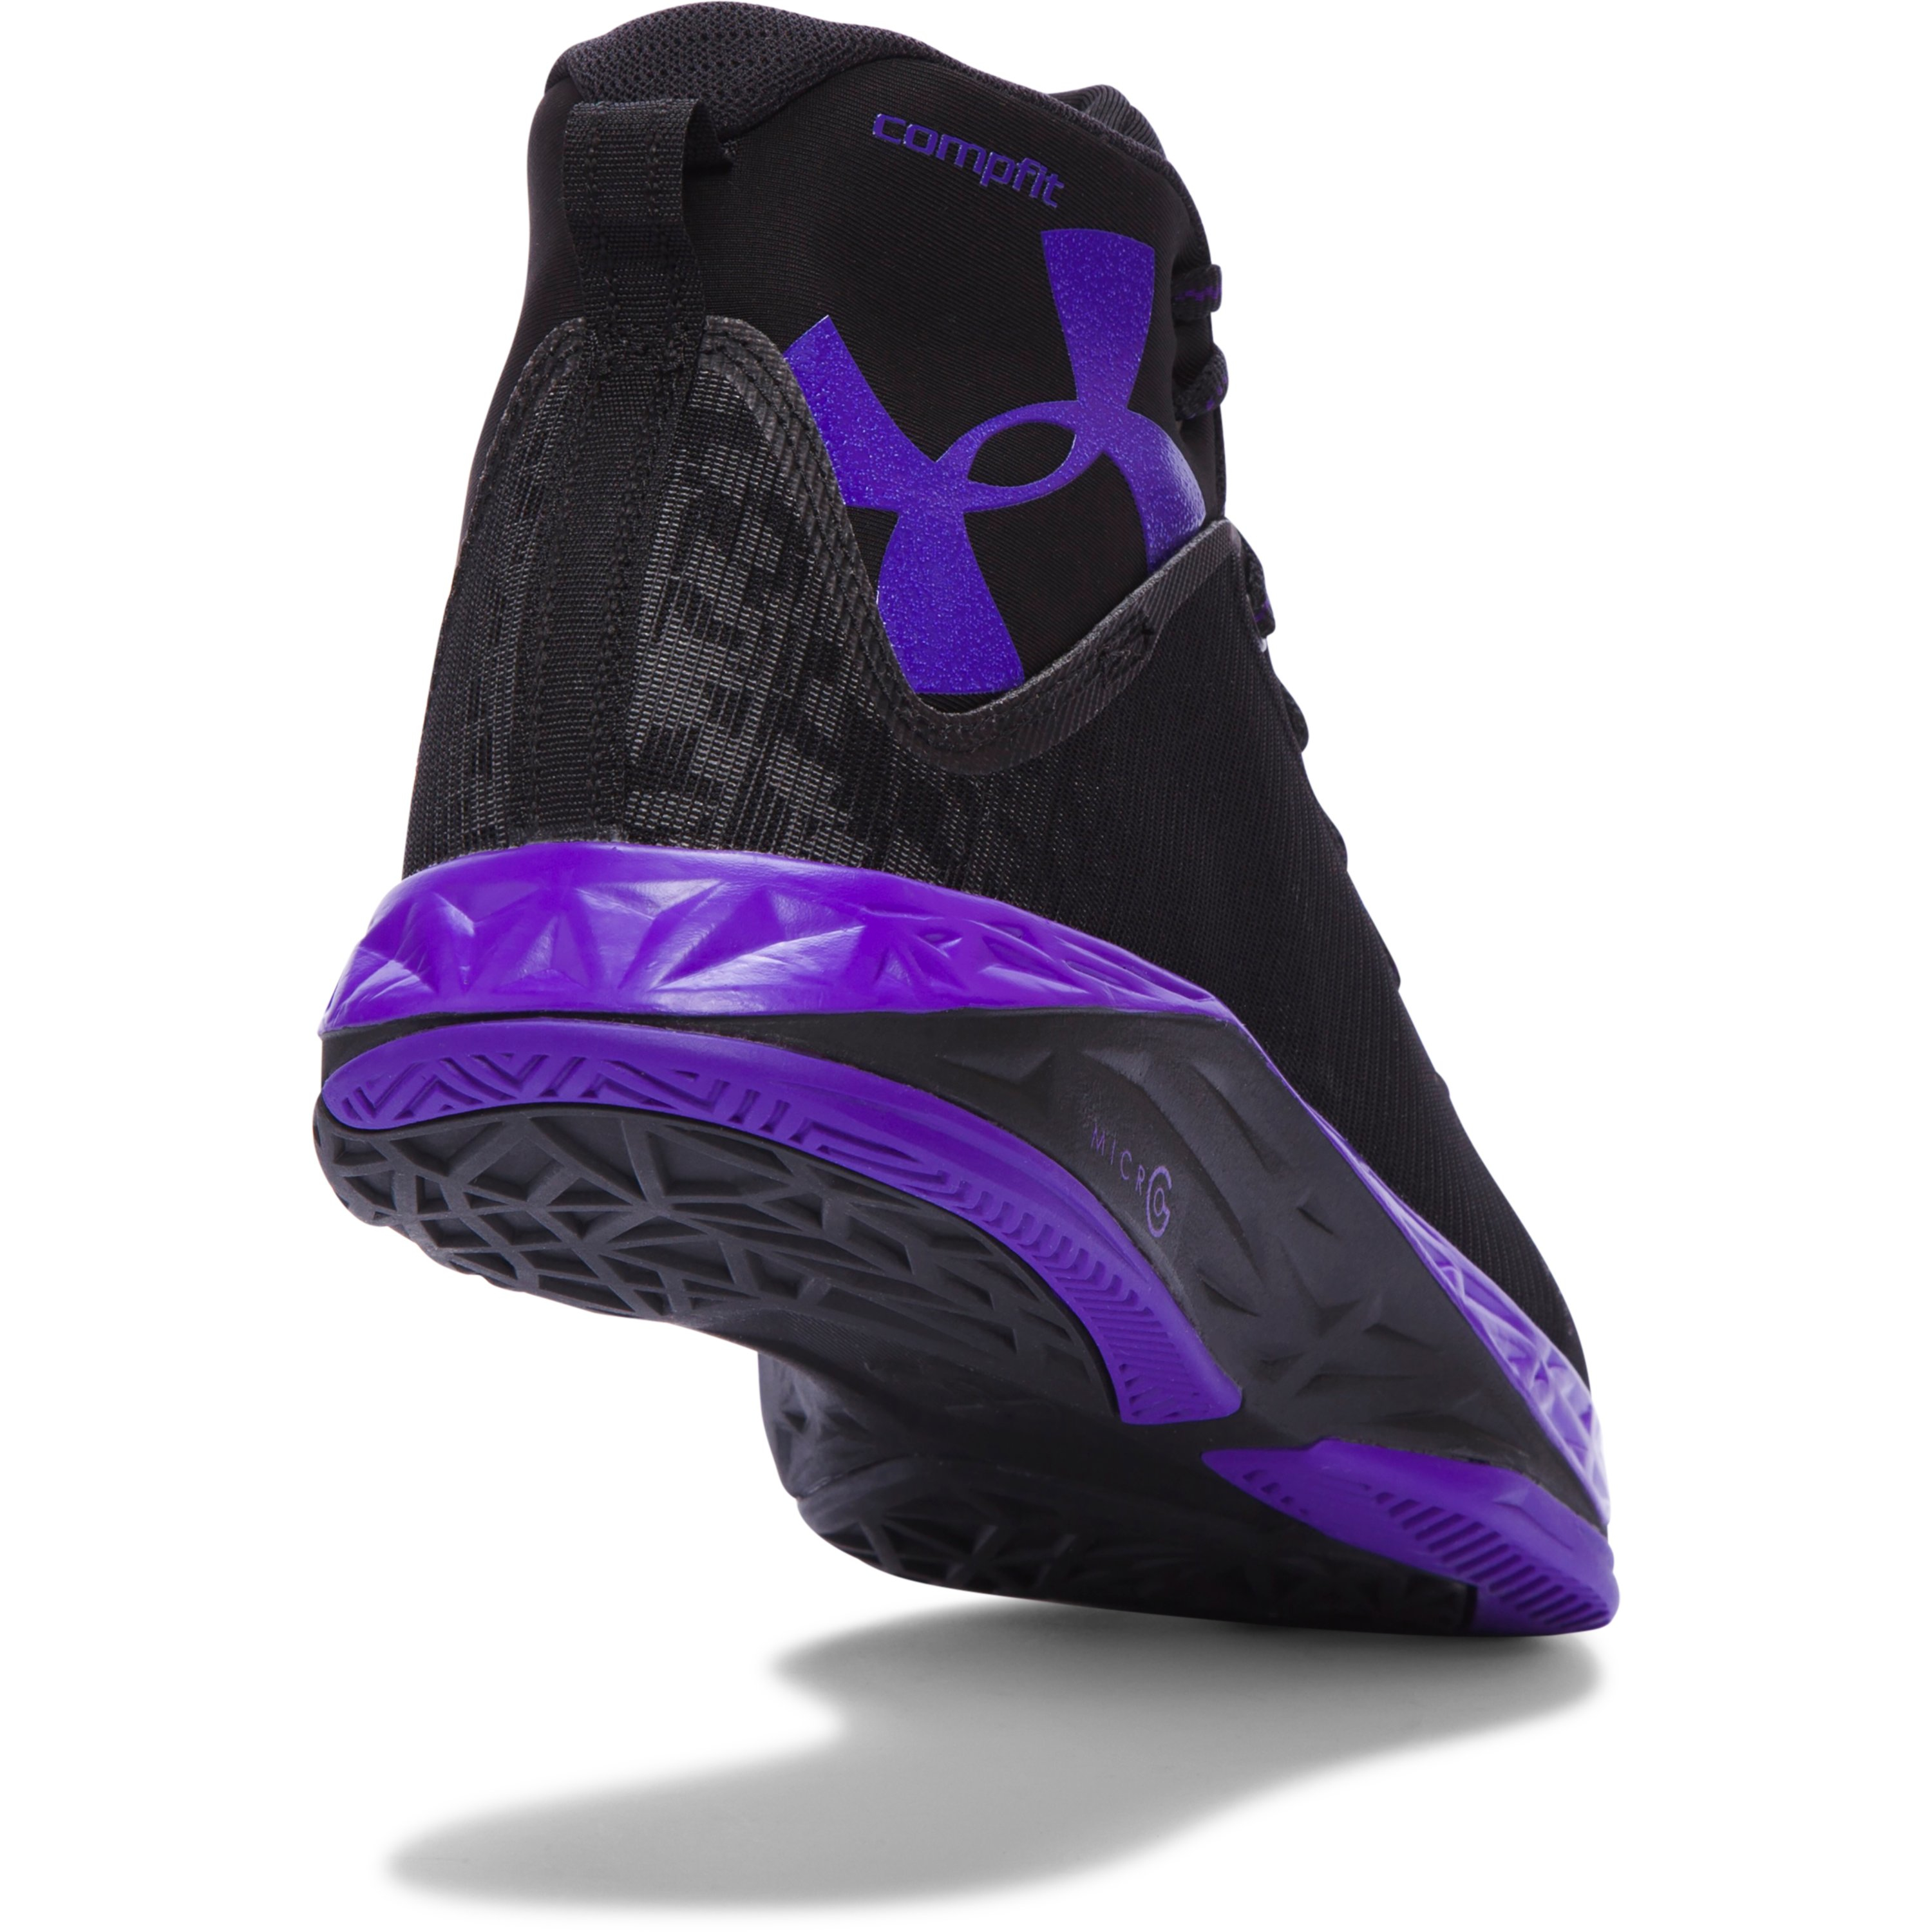 44269c5a45cc Lyst - Under Armour Men s Ua Fireshot Basketball Shoes in Purple for Men